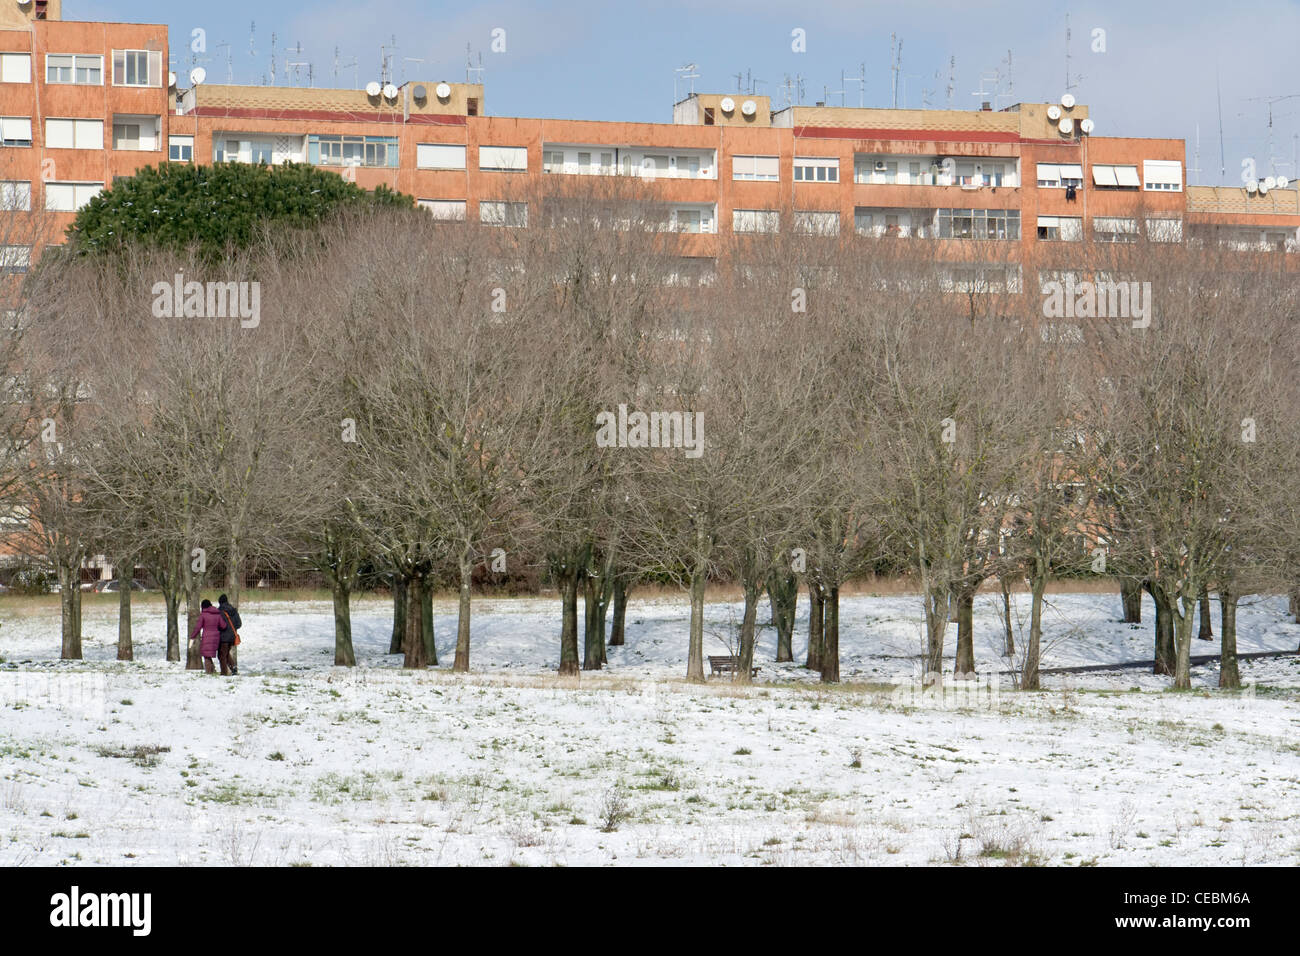 City park and apartment buildings under the snow, with two persons on a path, Rome - Stock Image